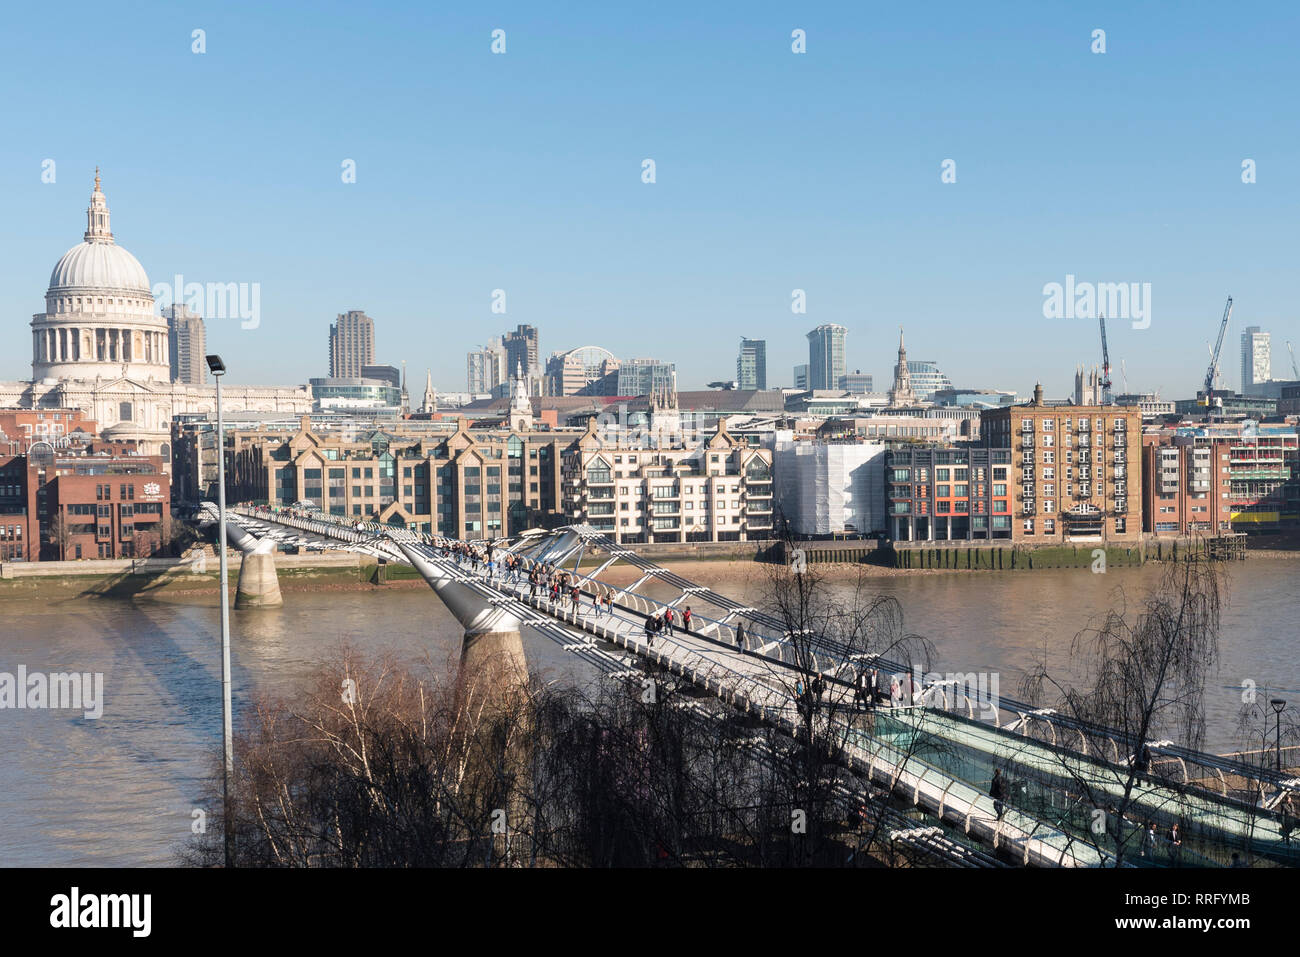 London, UK. 26th Feb, 2019. UK Weather: The City of London is bathed in sunshine on what is forecast to be the hottest February day since records began. The unseasonably warm weather is expected to continue for one more day before temperatures lower. Credit: Stephen Chung/Alamy Live News Stock Photo